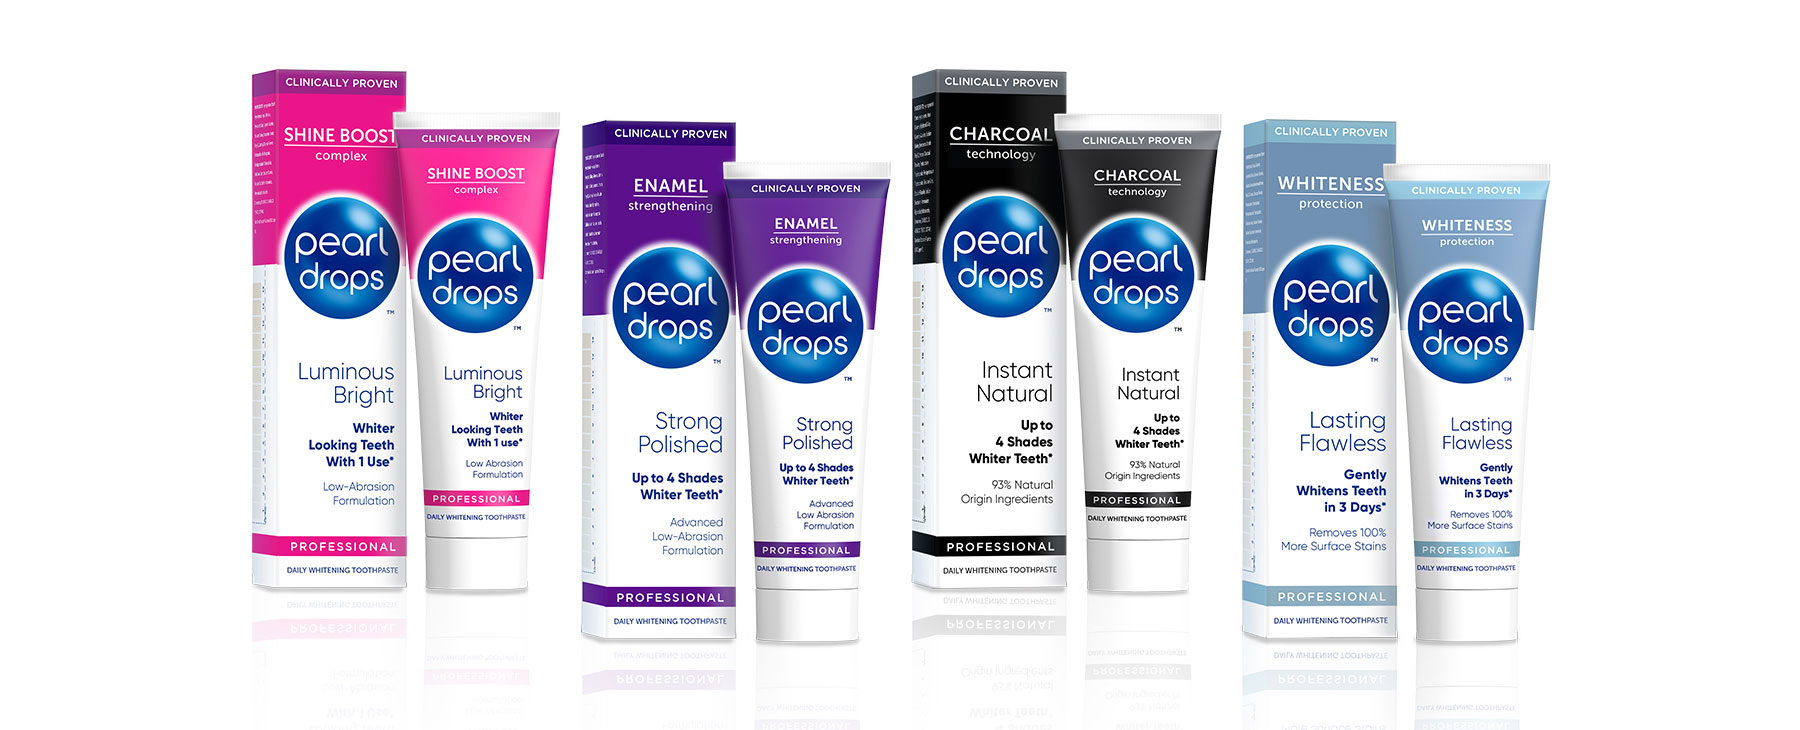 pearl drops ultimate whitening review